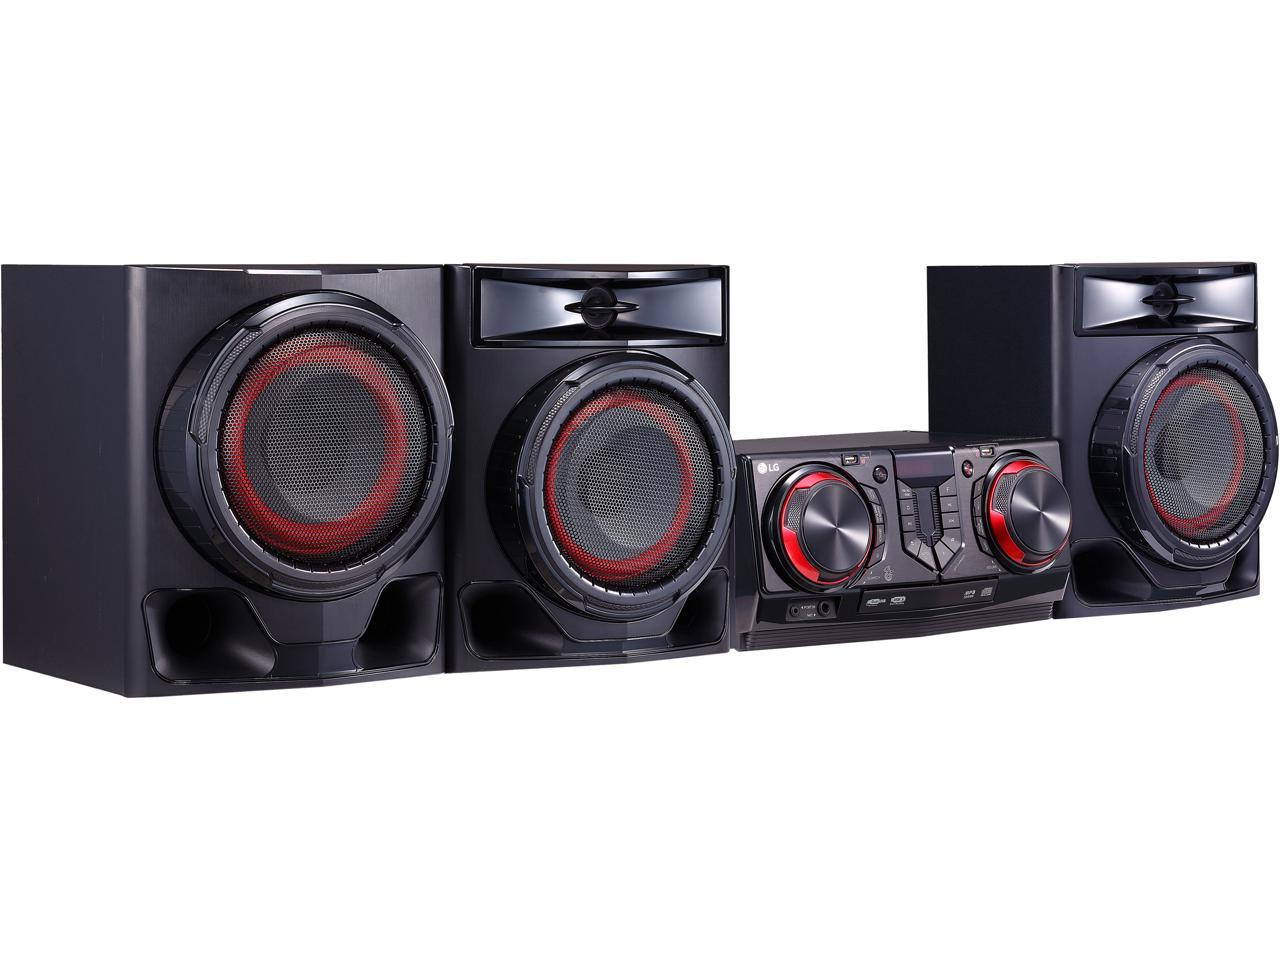 Refurb LG CJ45 Home Theater System